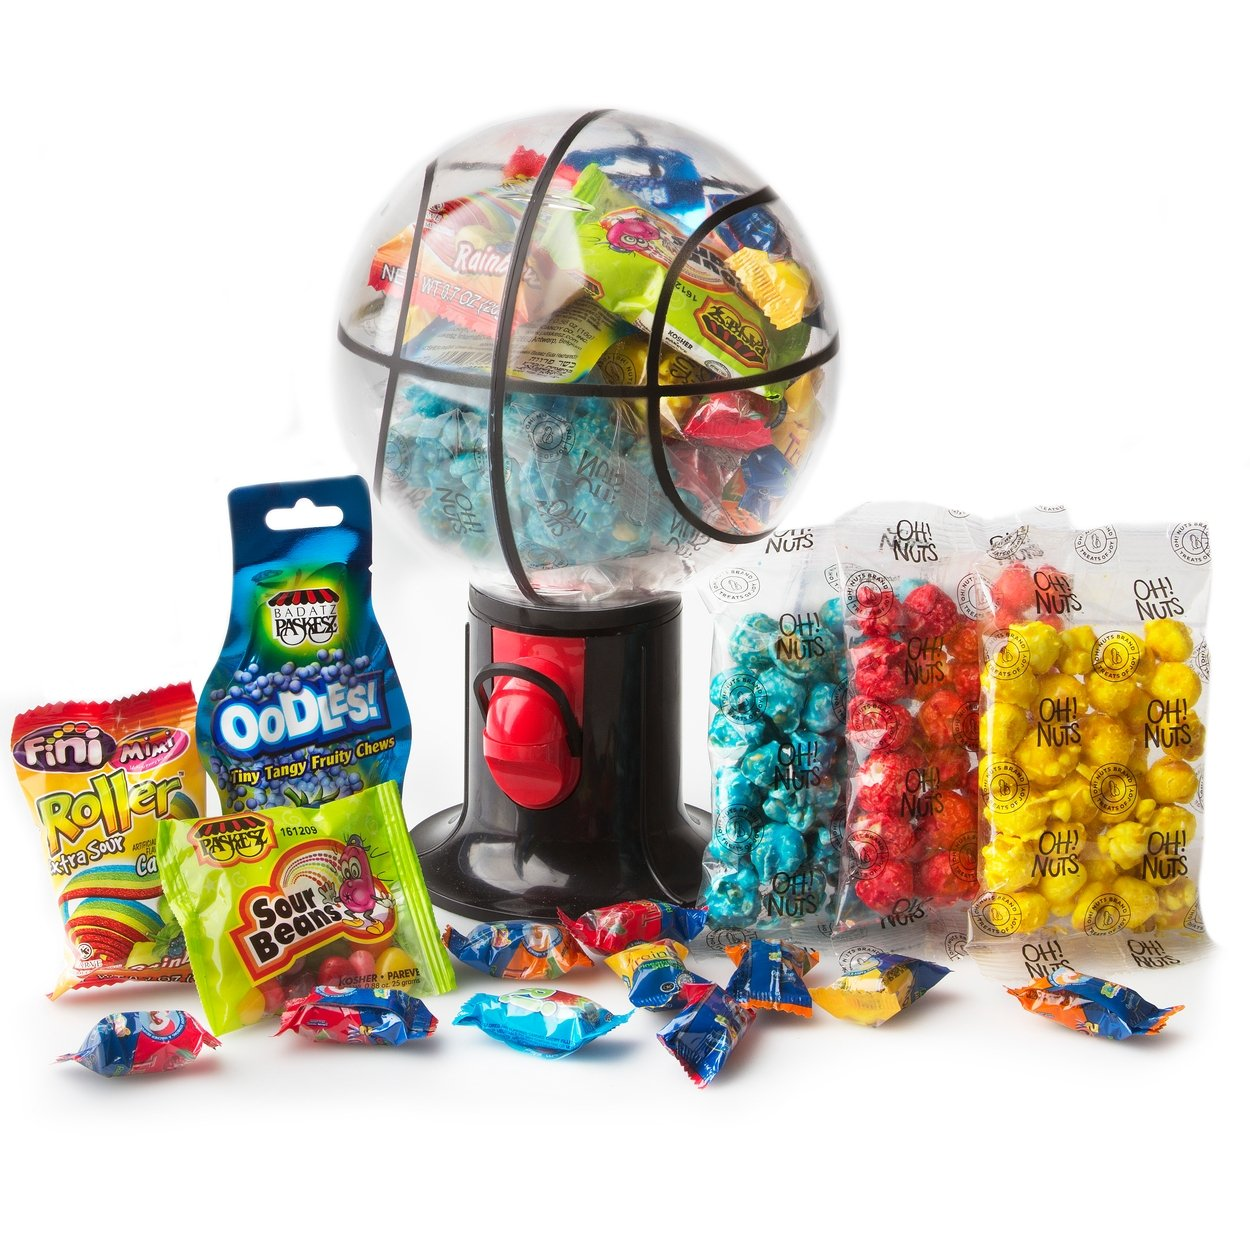 Kosher Camp Packages and Gifts - Kosher Snack and Kosher Candy - Oh! Nuts (Sports Candy Dispenser)